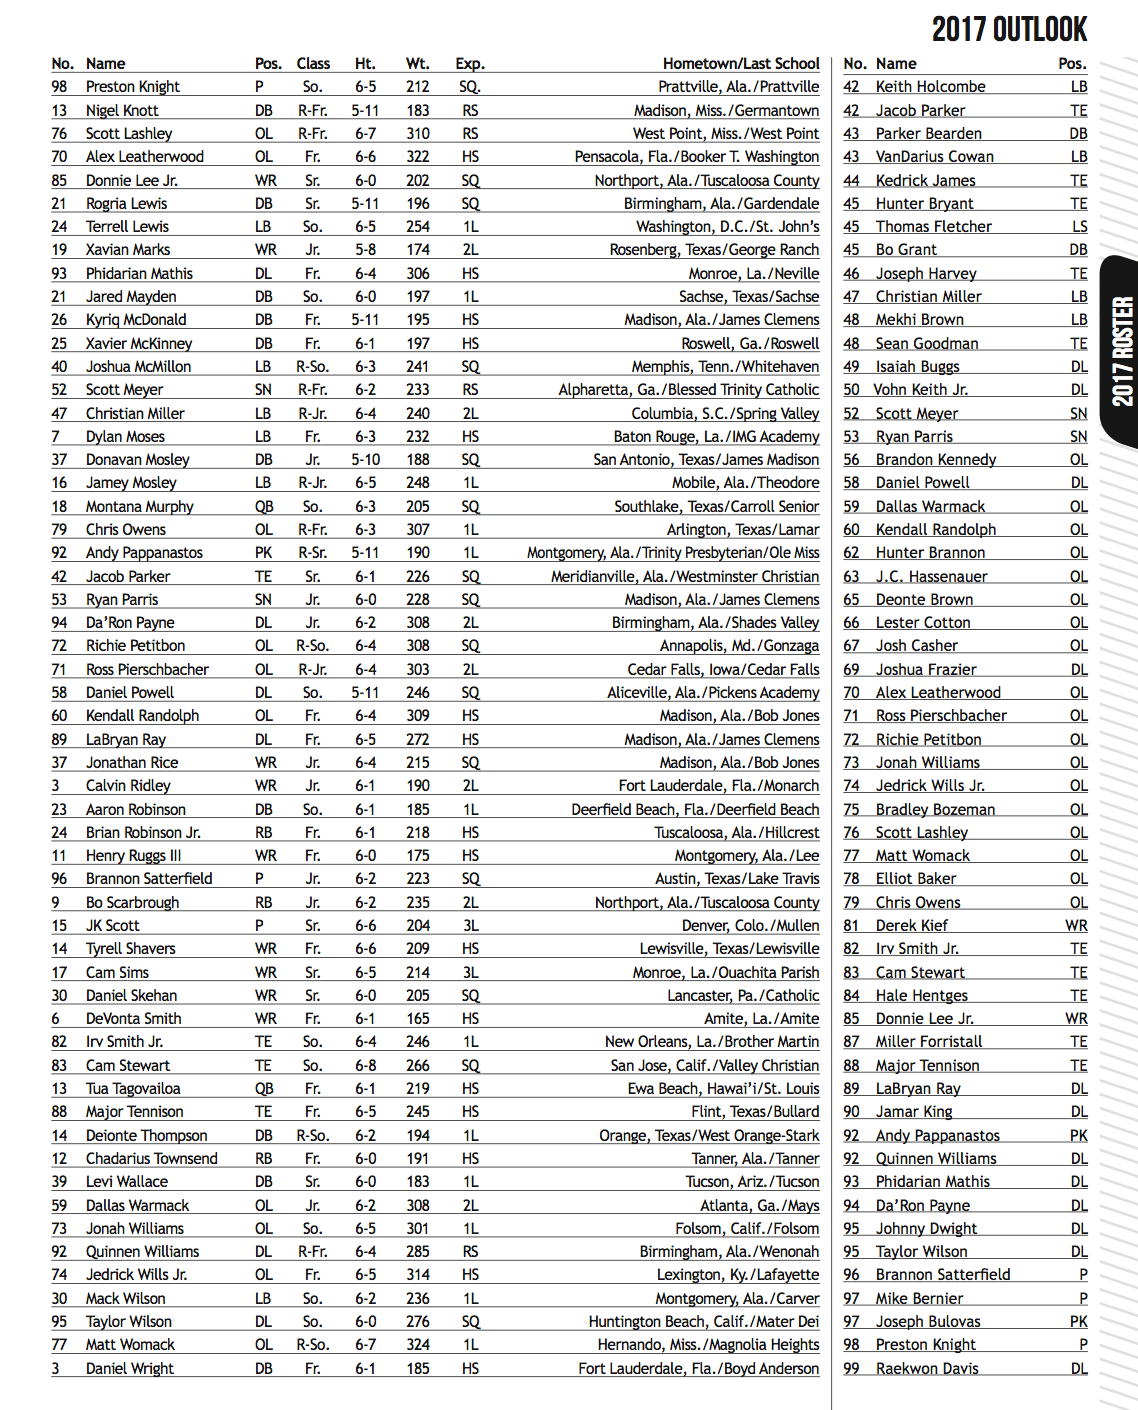 LOOK: Alabama football releases 2017 roster